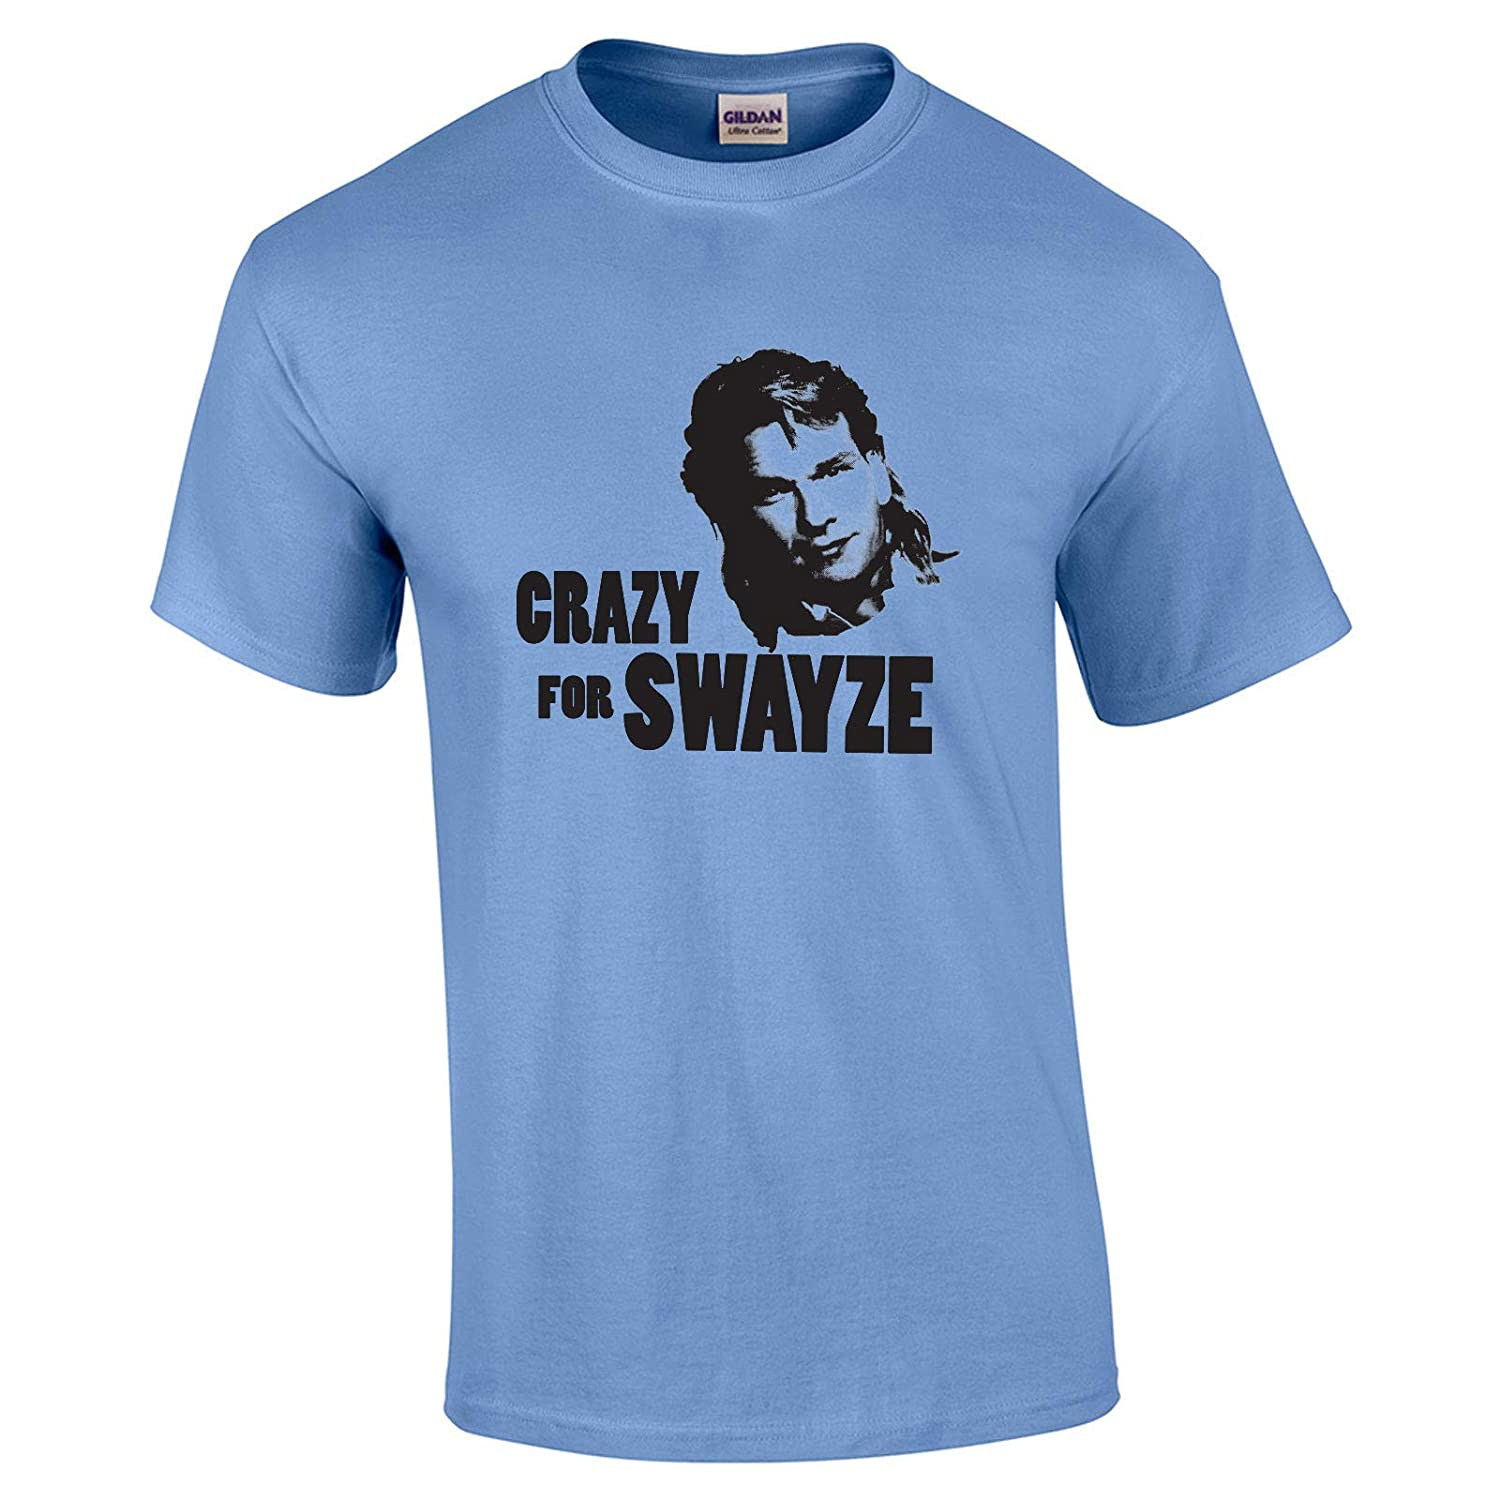 49 Crazy for Swayze Funny Men/'s T Shirt